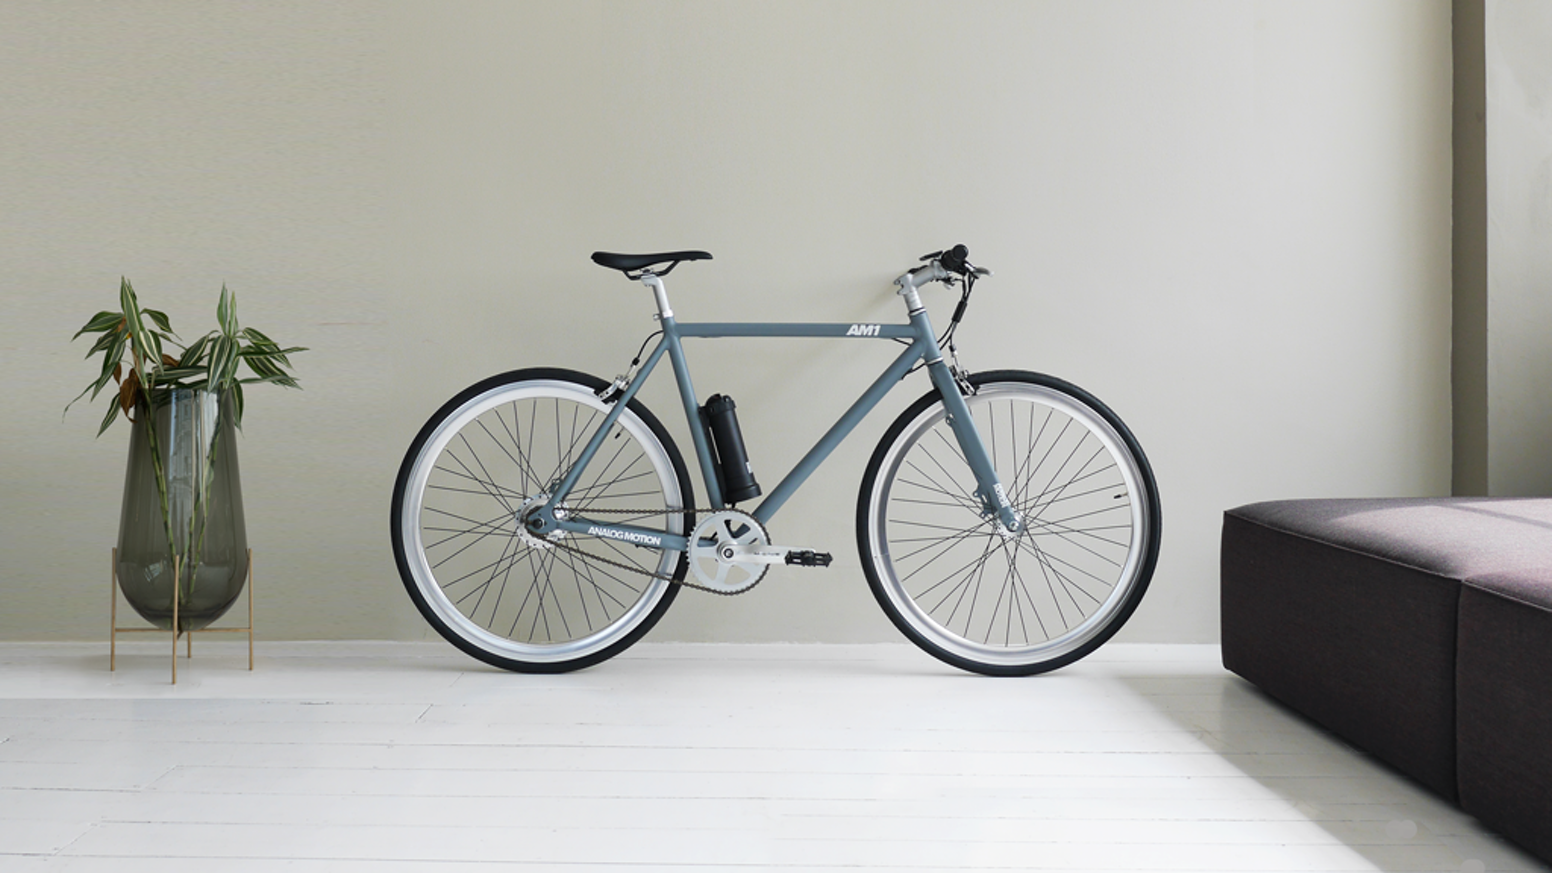 The AM1 is a minimal urban electric bike by Analog Motion.